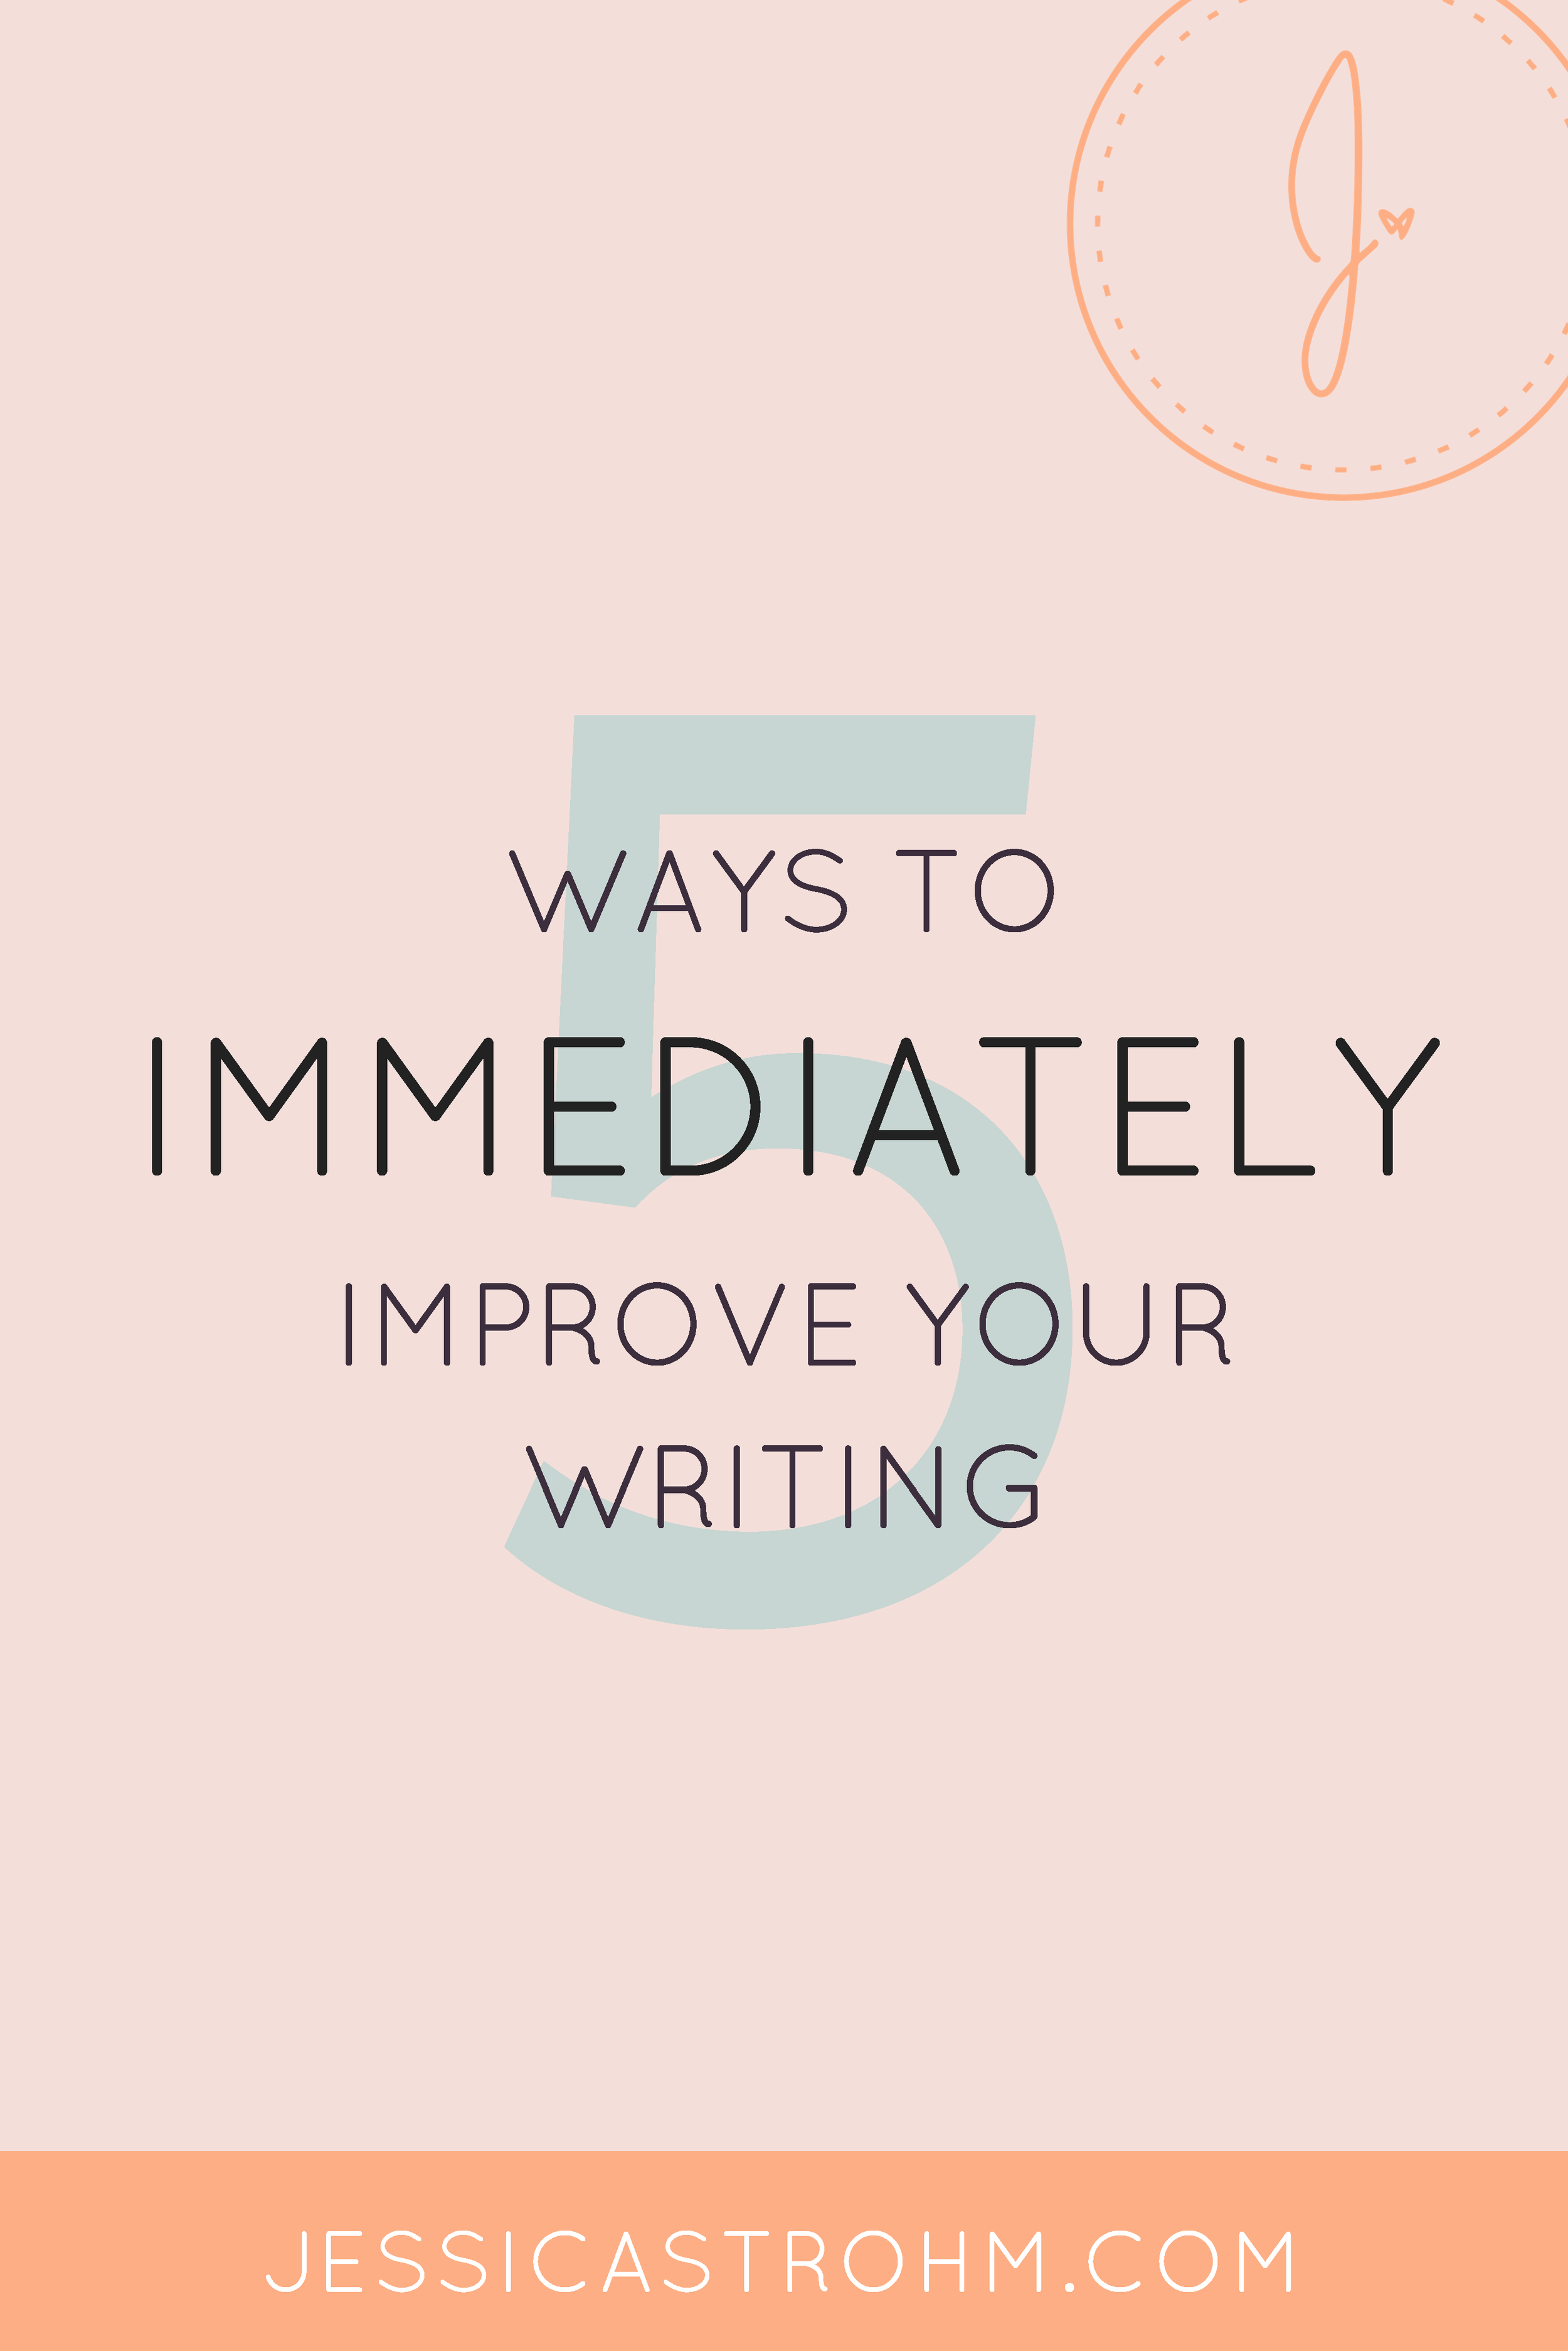 How to quickly improve your writing skills